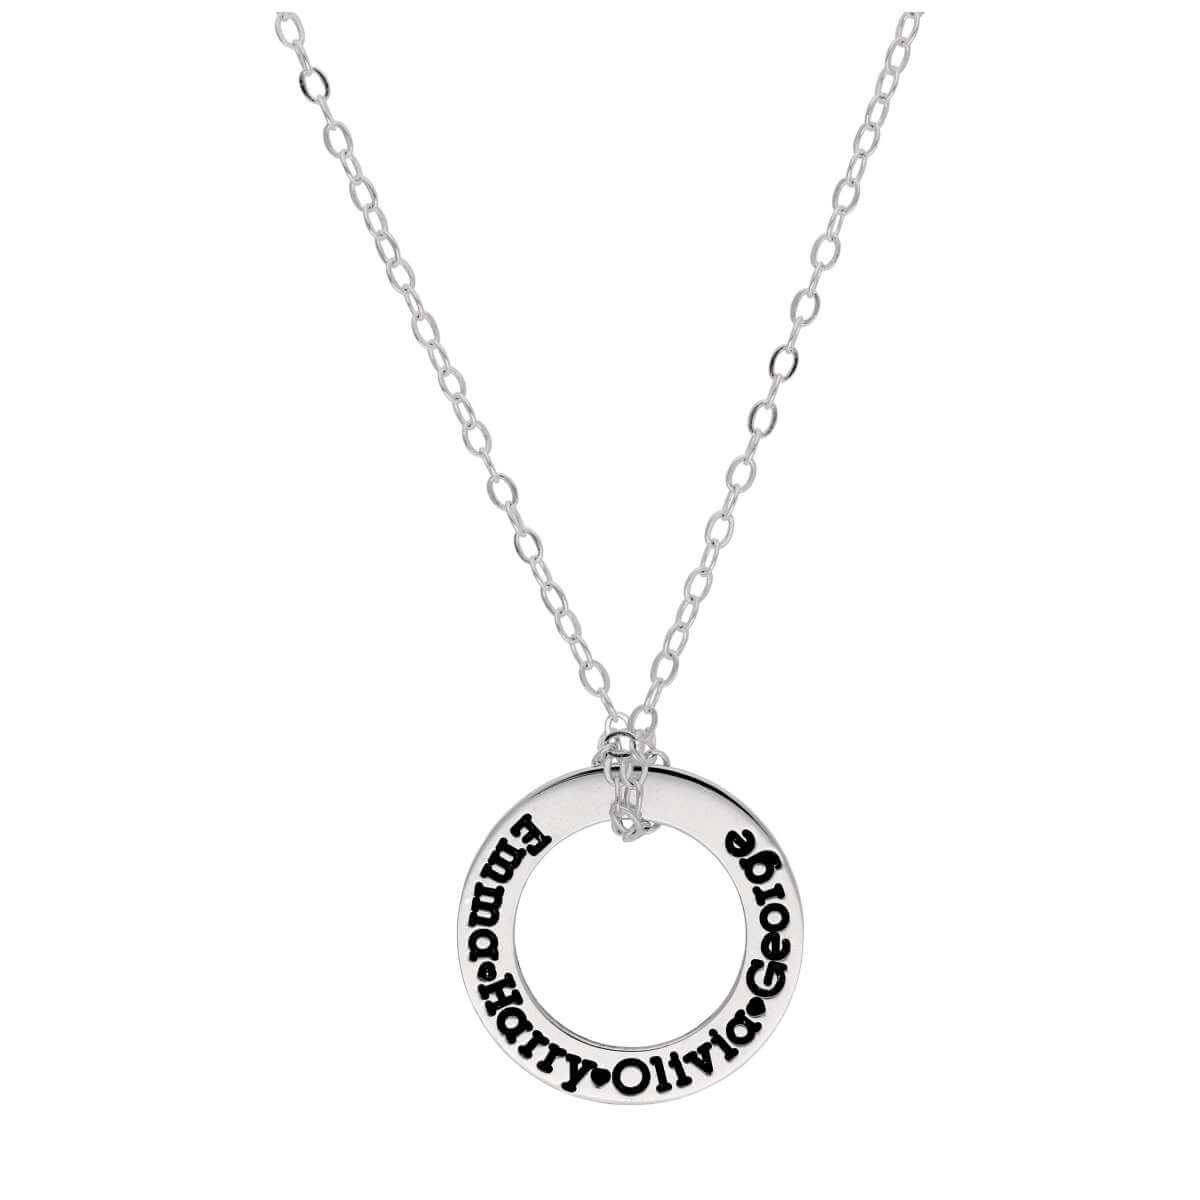 Bespoke Sterling Silver Name Circle Necklace 16-28 Inches